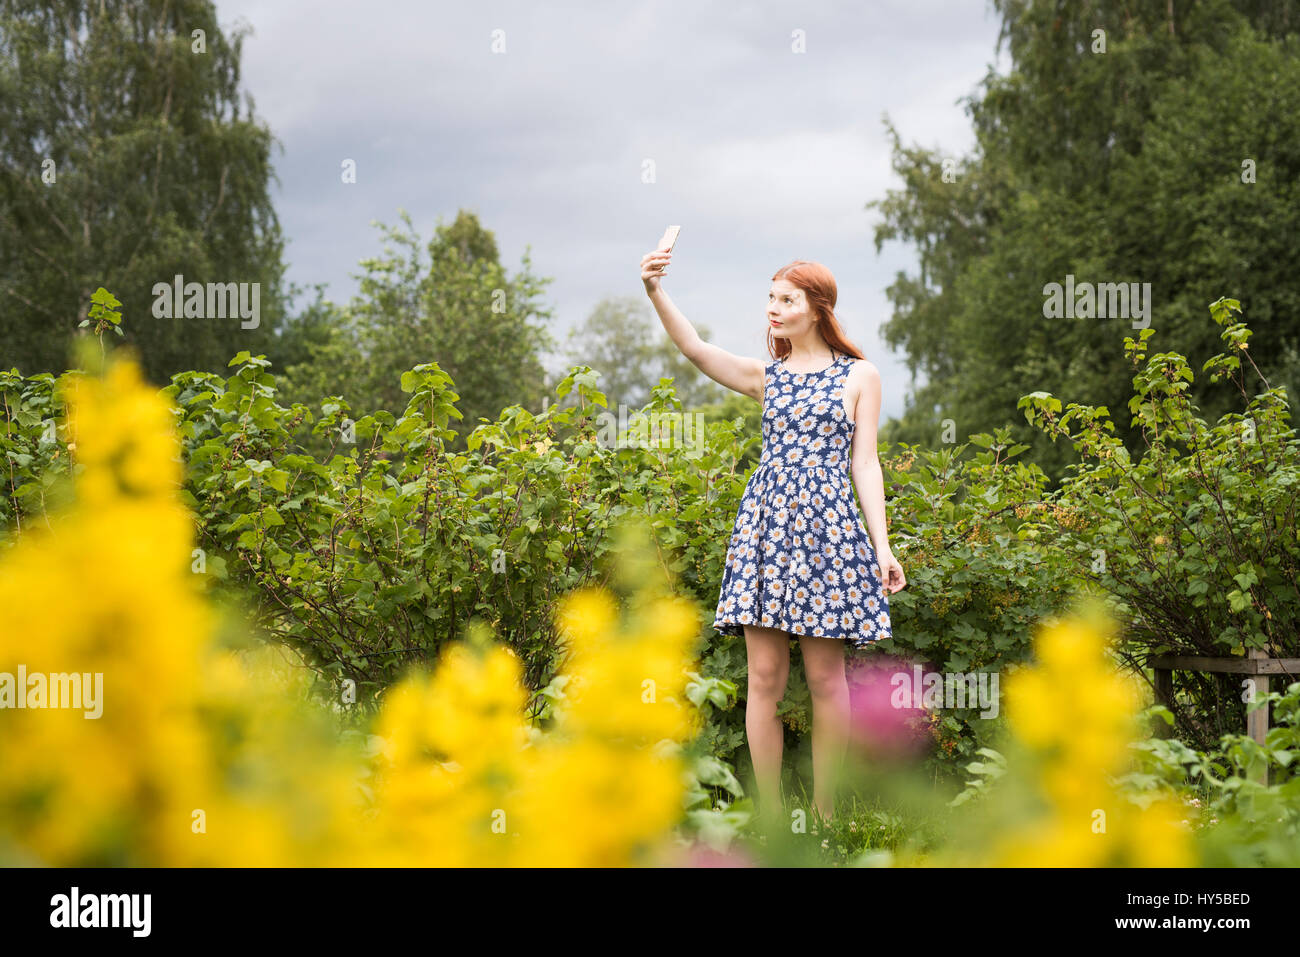 Finland, Pirkanmaa, Tampere, Woman taking selfie in rural scenery - Stock Image